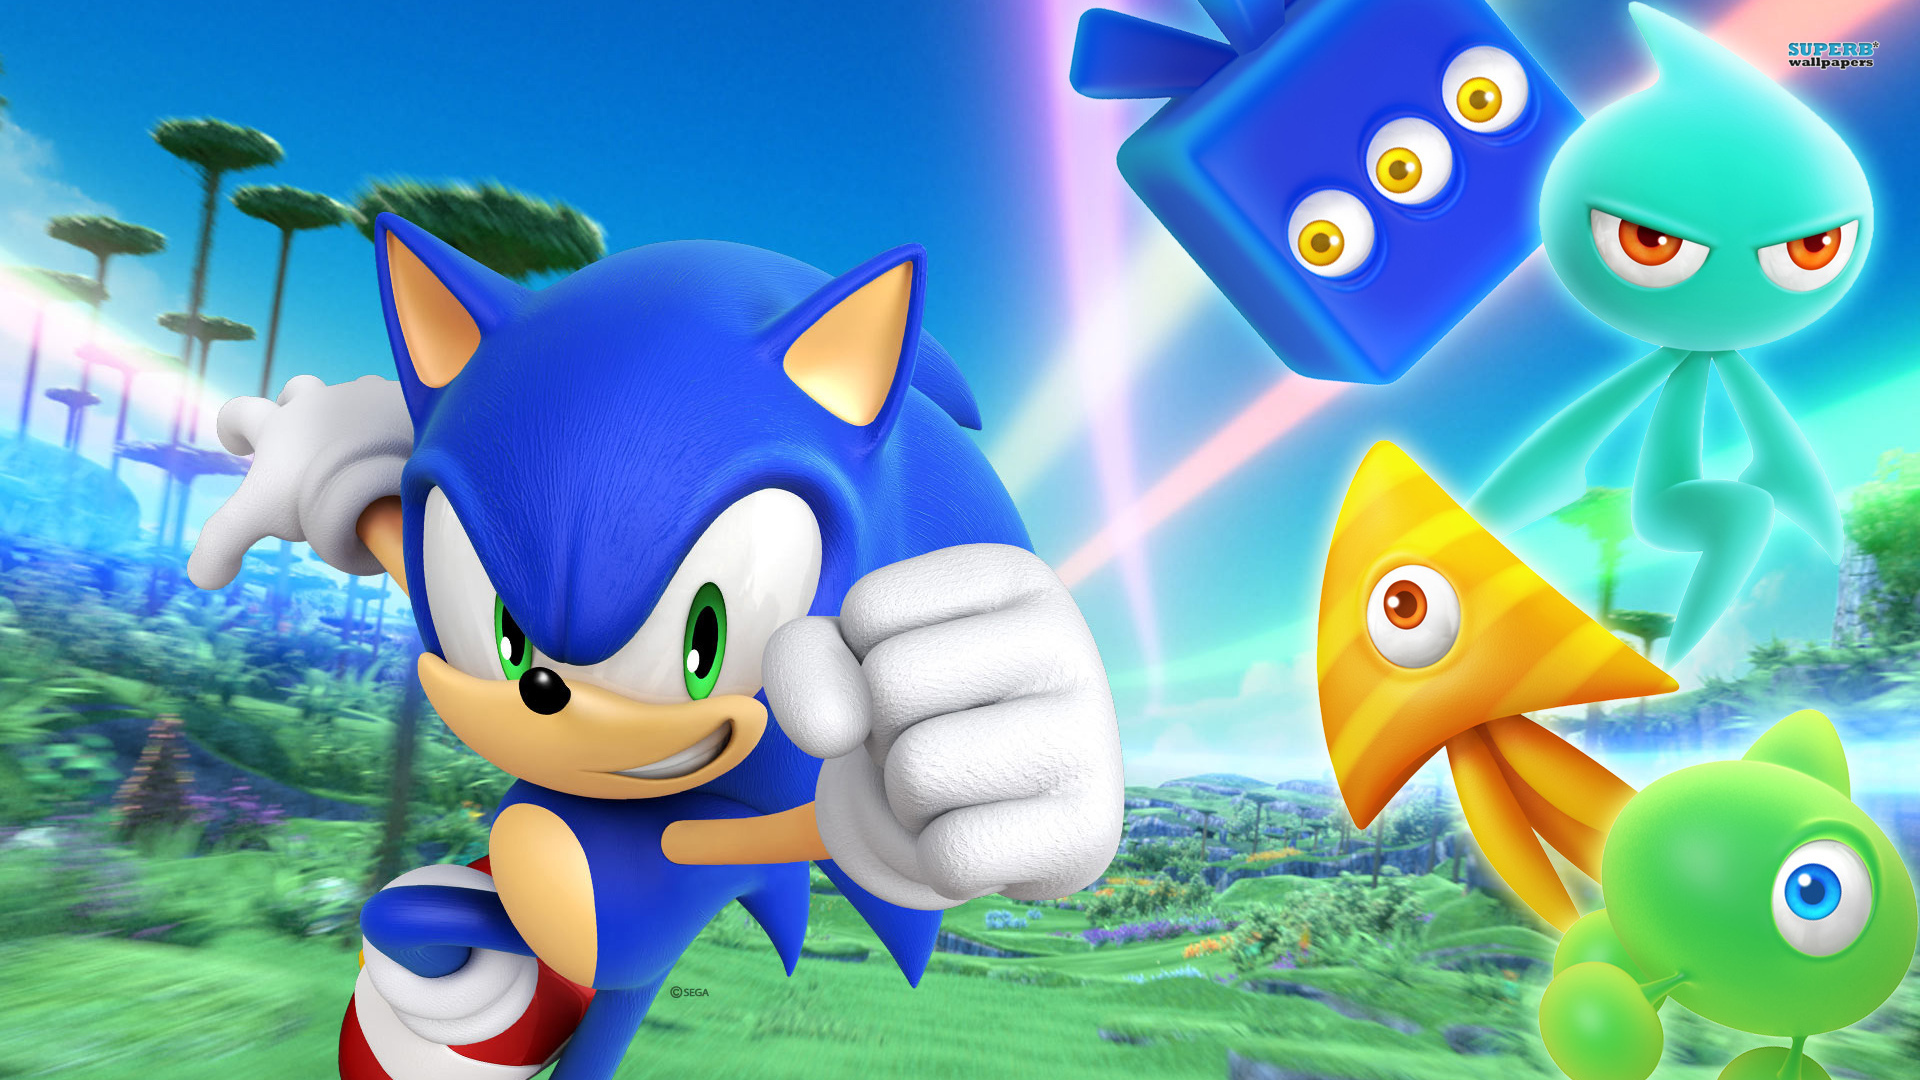 Metal-Sonic-HD-Backgrounds-Abyss-wallpaper-wp360671